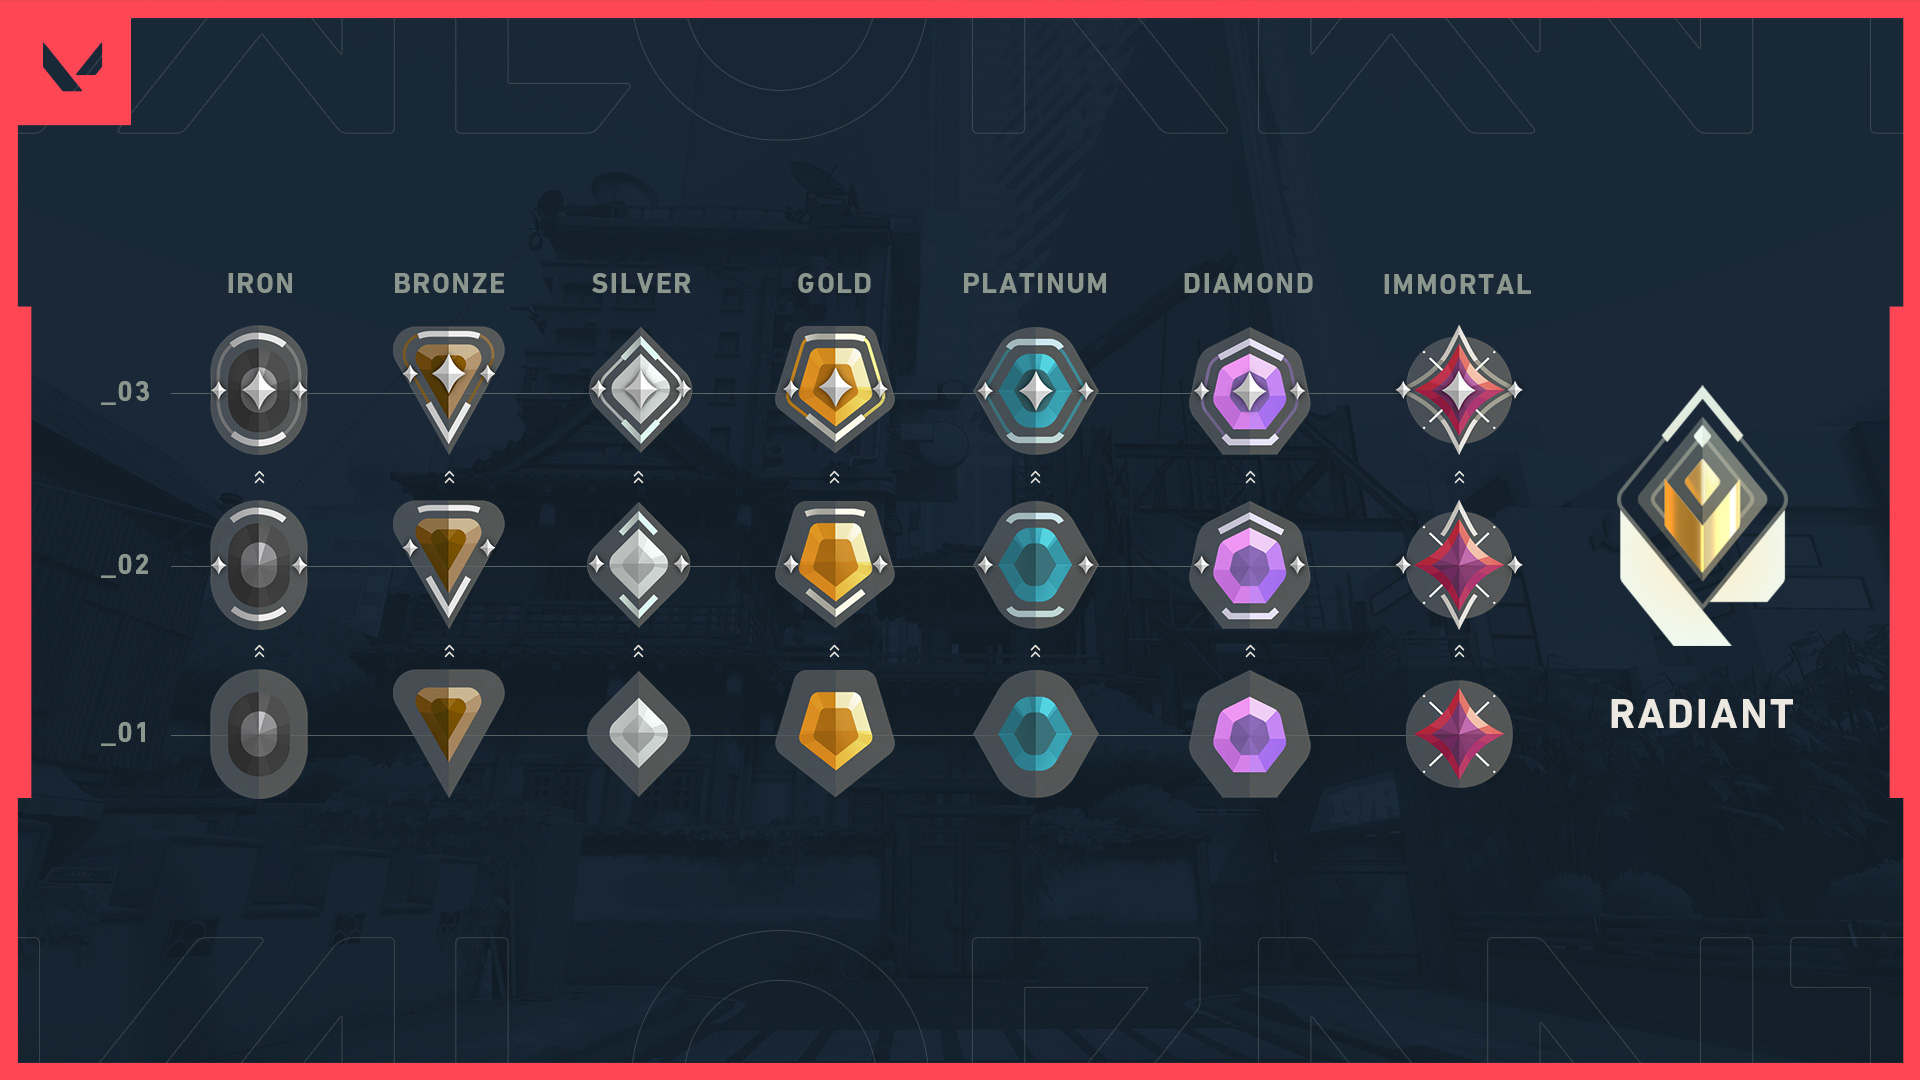 A chart of rank icons divided by category: iron, bronze, silver, gold, platinum, diamond, immortal, and Valorant.